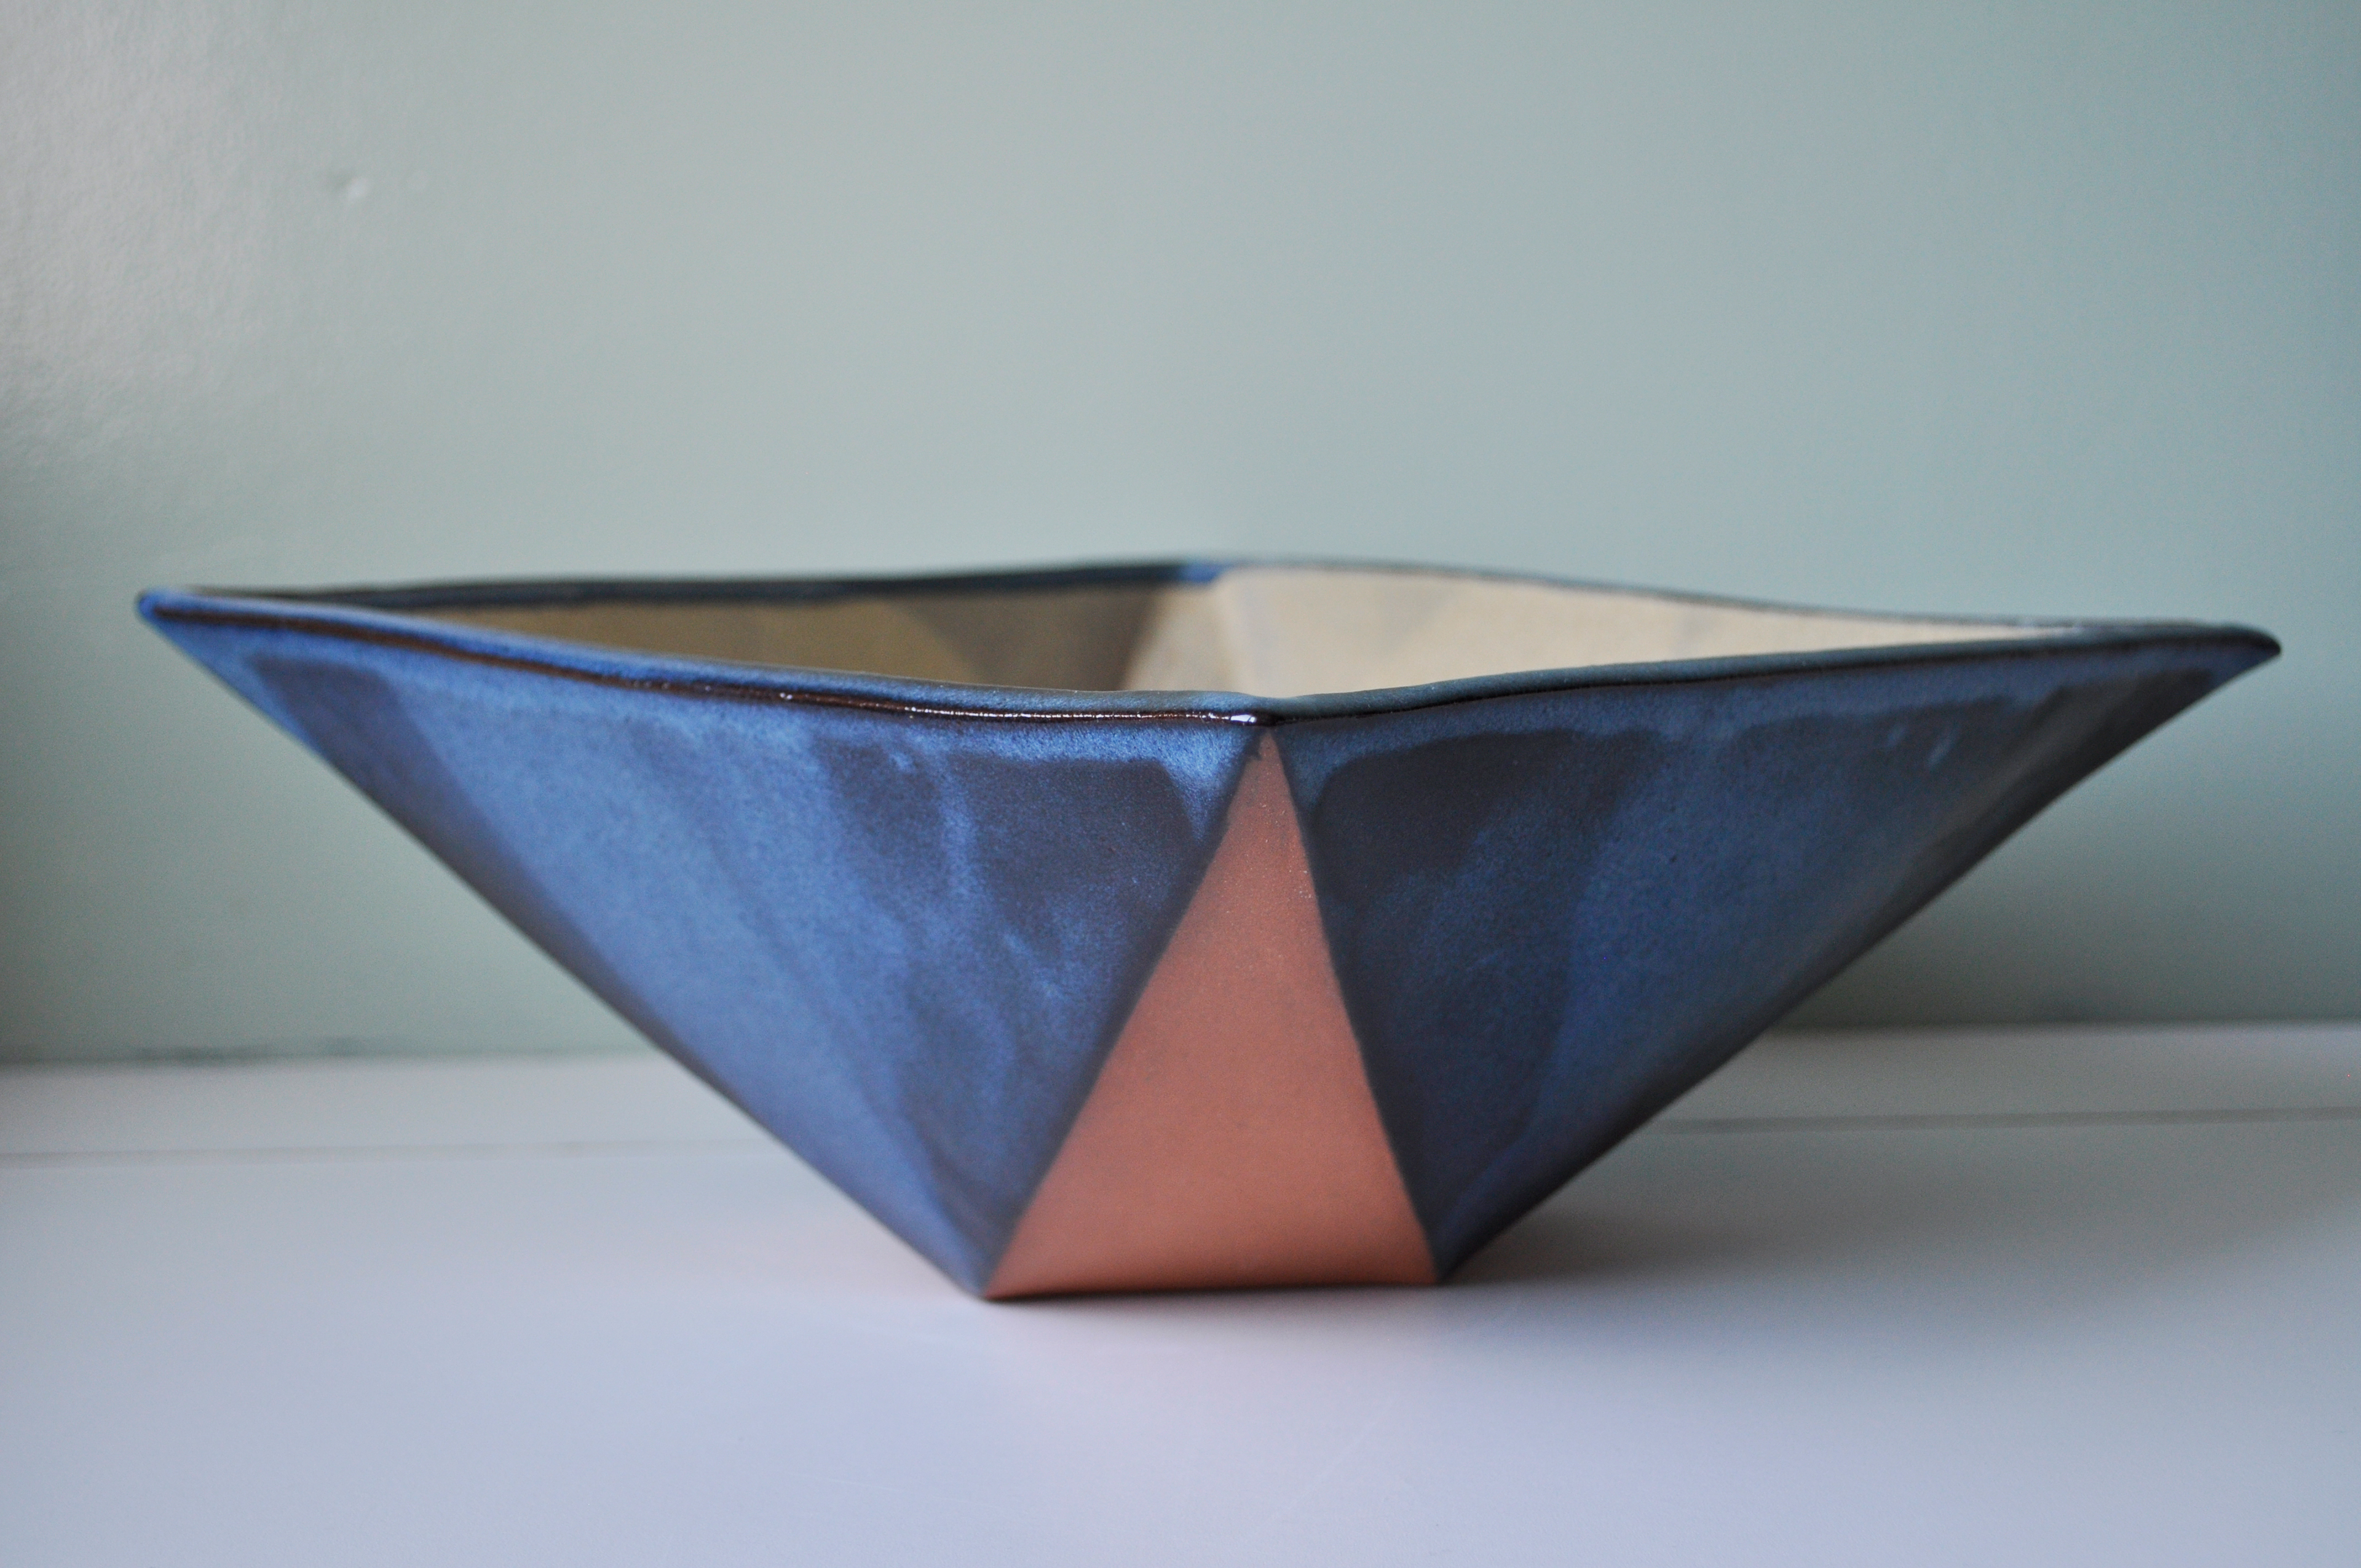 Mary louise wang hand built ceramics hand built ceramic serving bowls and vase the geometric bowls and vase were created using the slab technique while the circular bowls were created using reviewsmspy